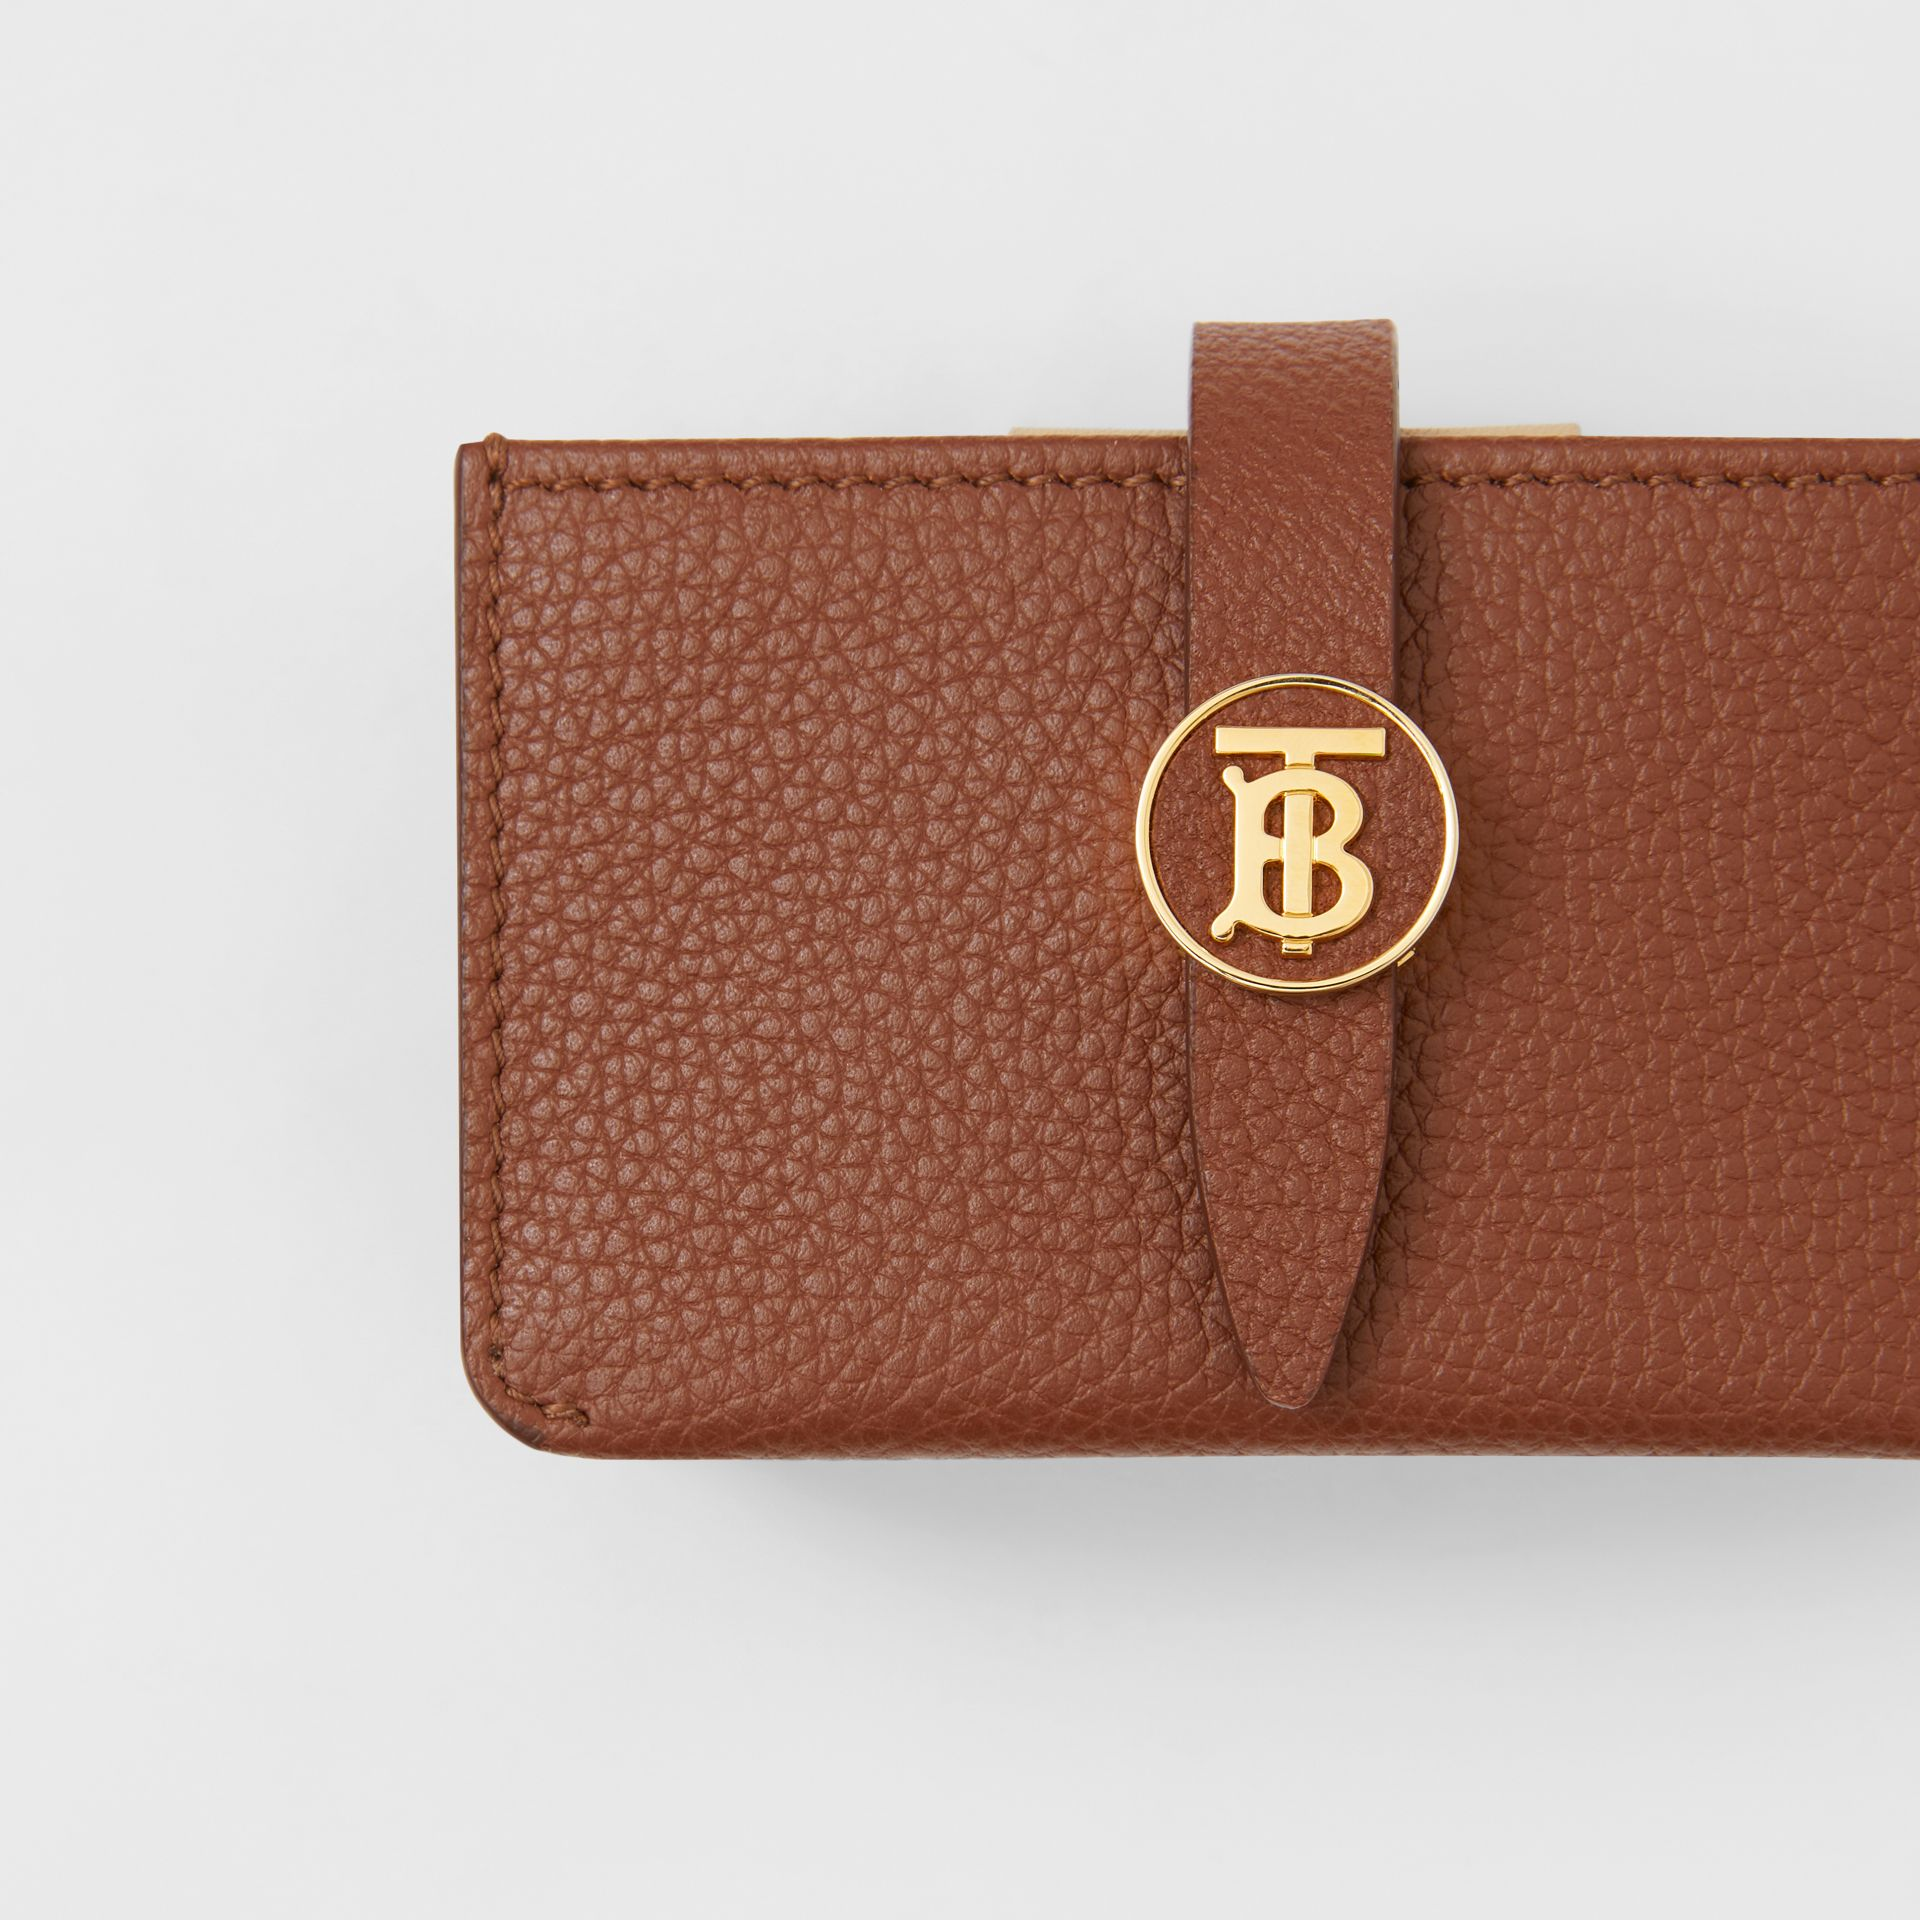 Monogram Motif Grainy Leather Card Case in Tan | Burberry - gallery image 5